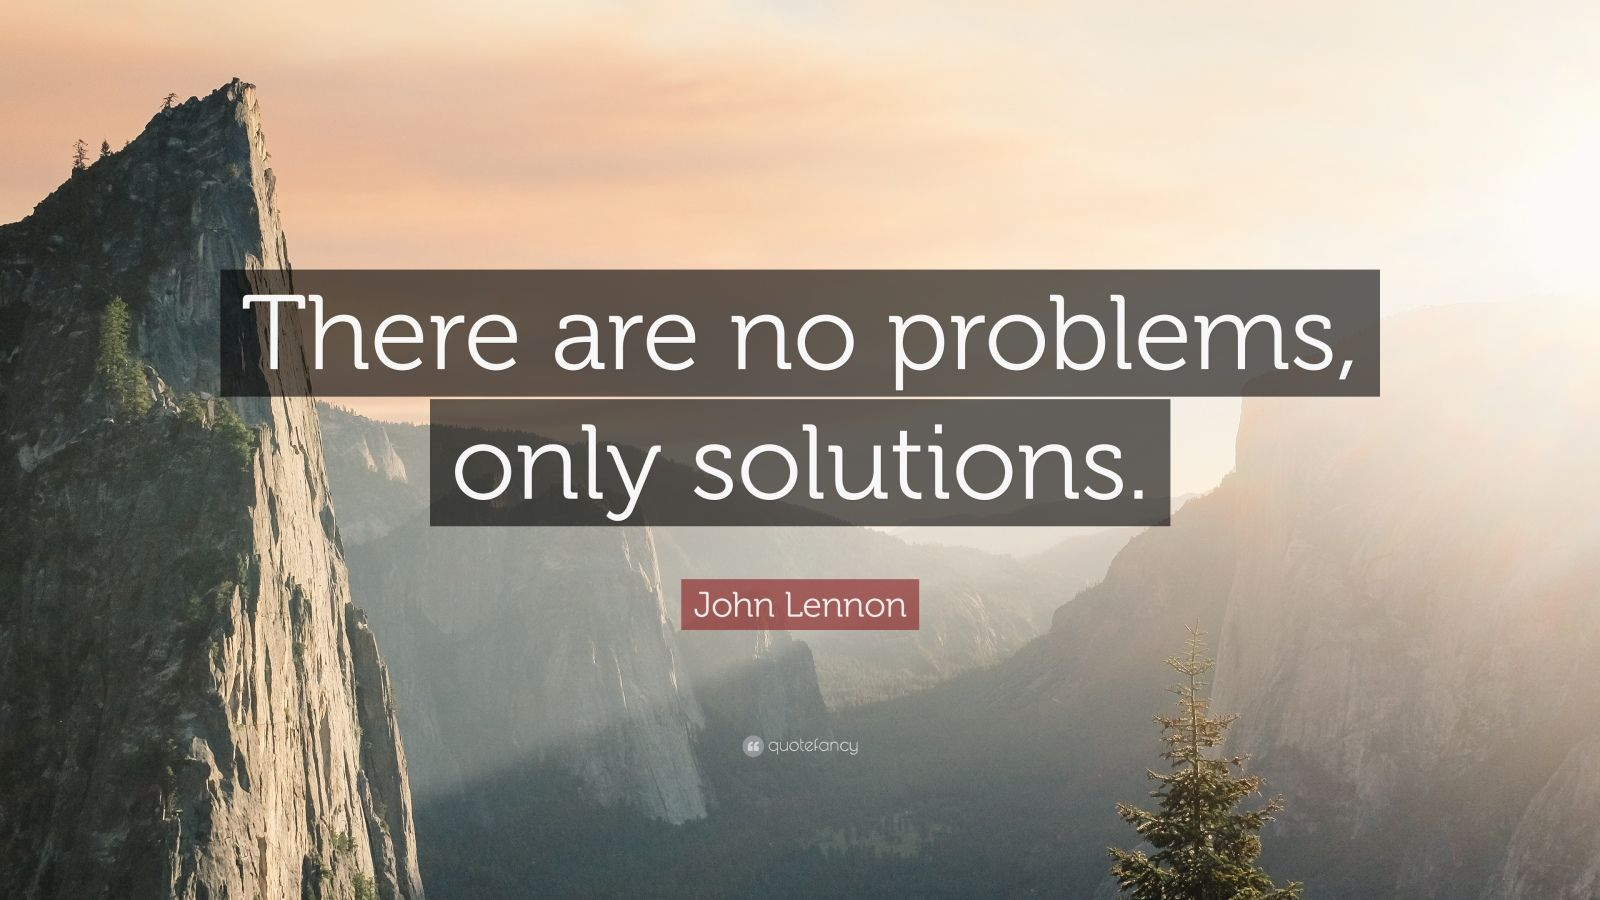 Wallpaper Quotes About Time John Lennon Quote There Are No Problems Only Solutions